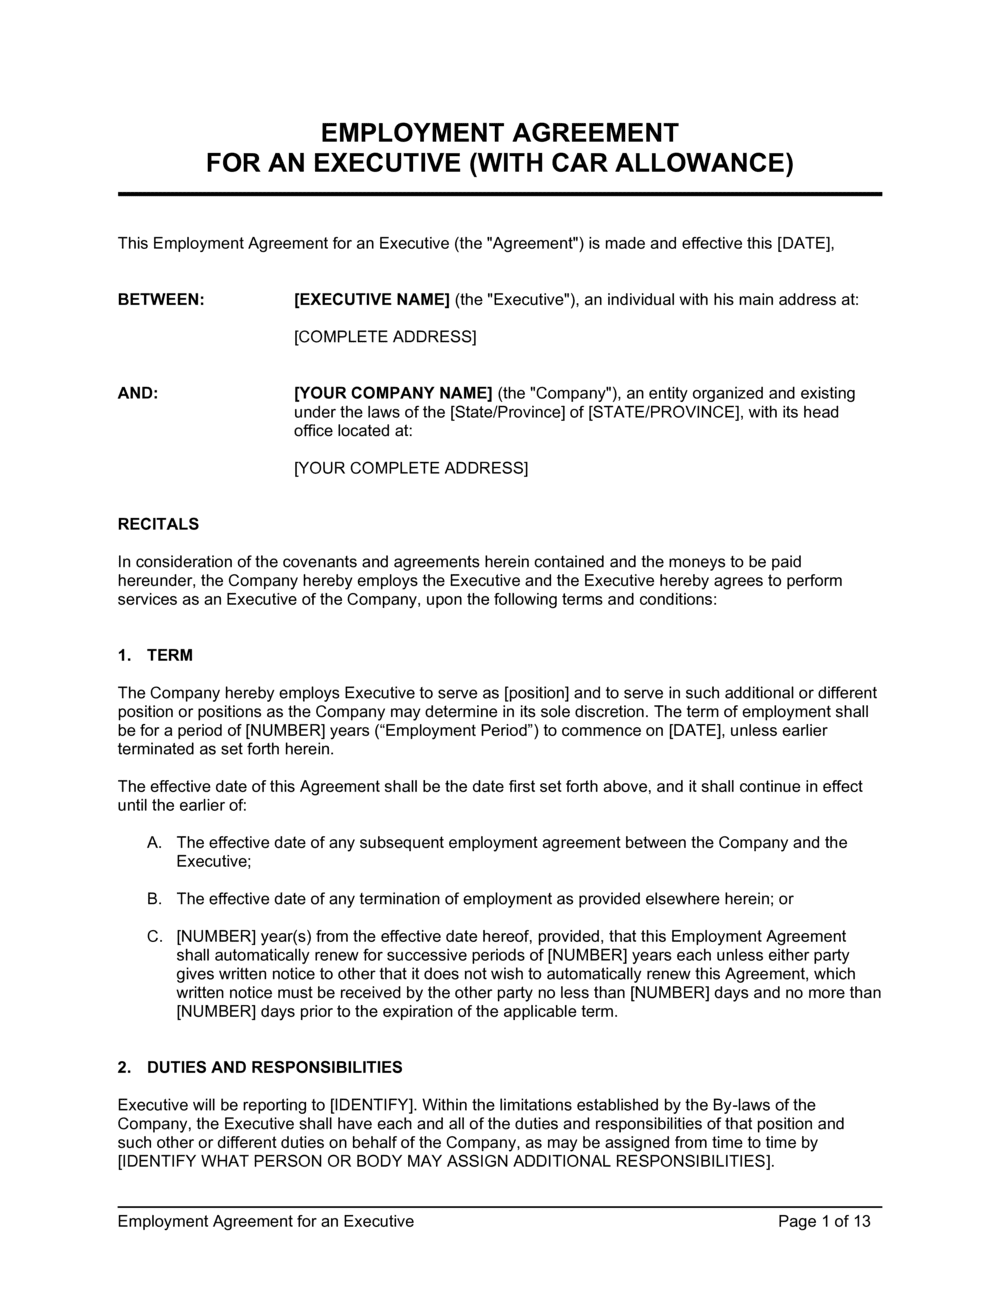 Business-in-a-Box's Employment Agreement Executive2 Template